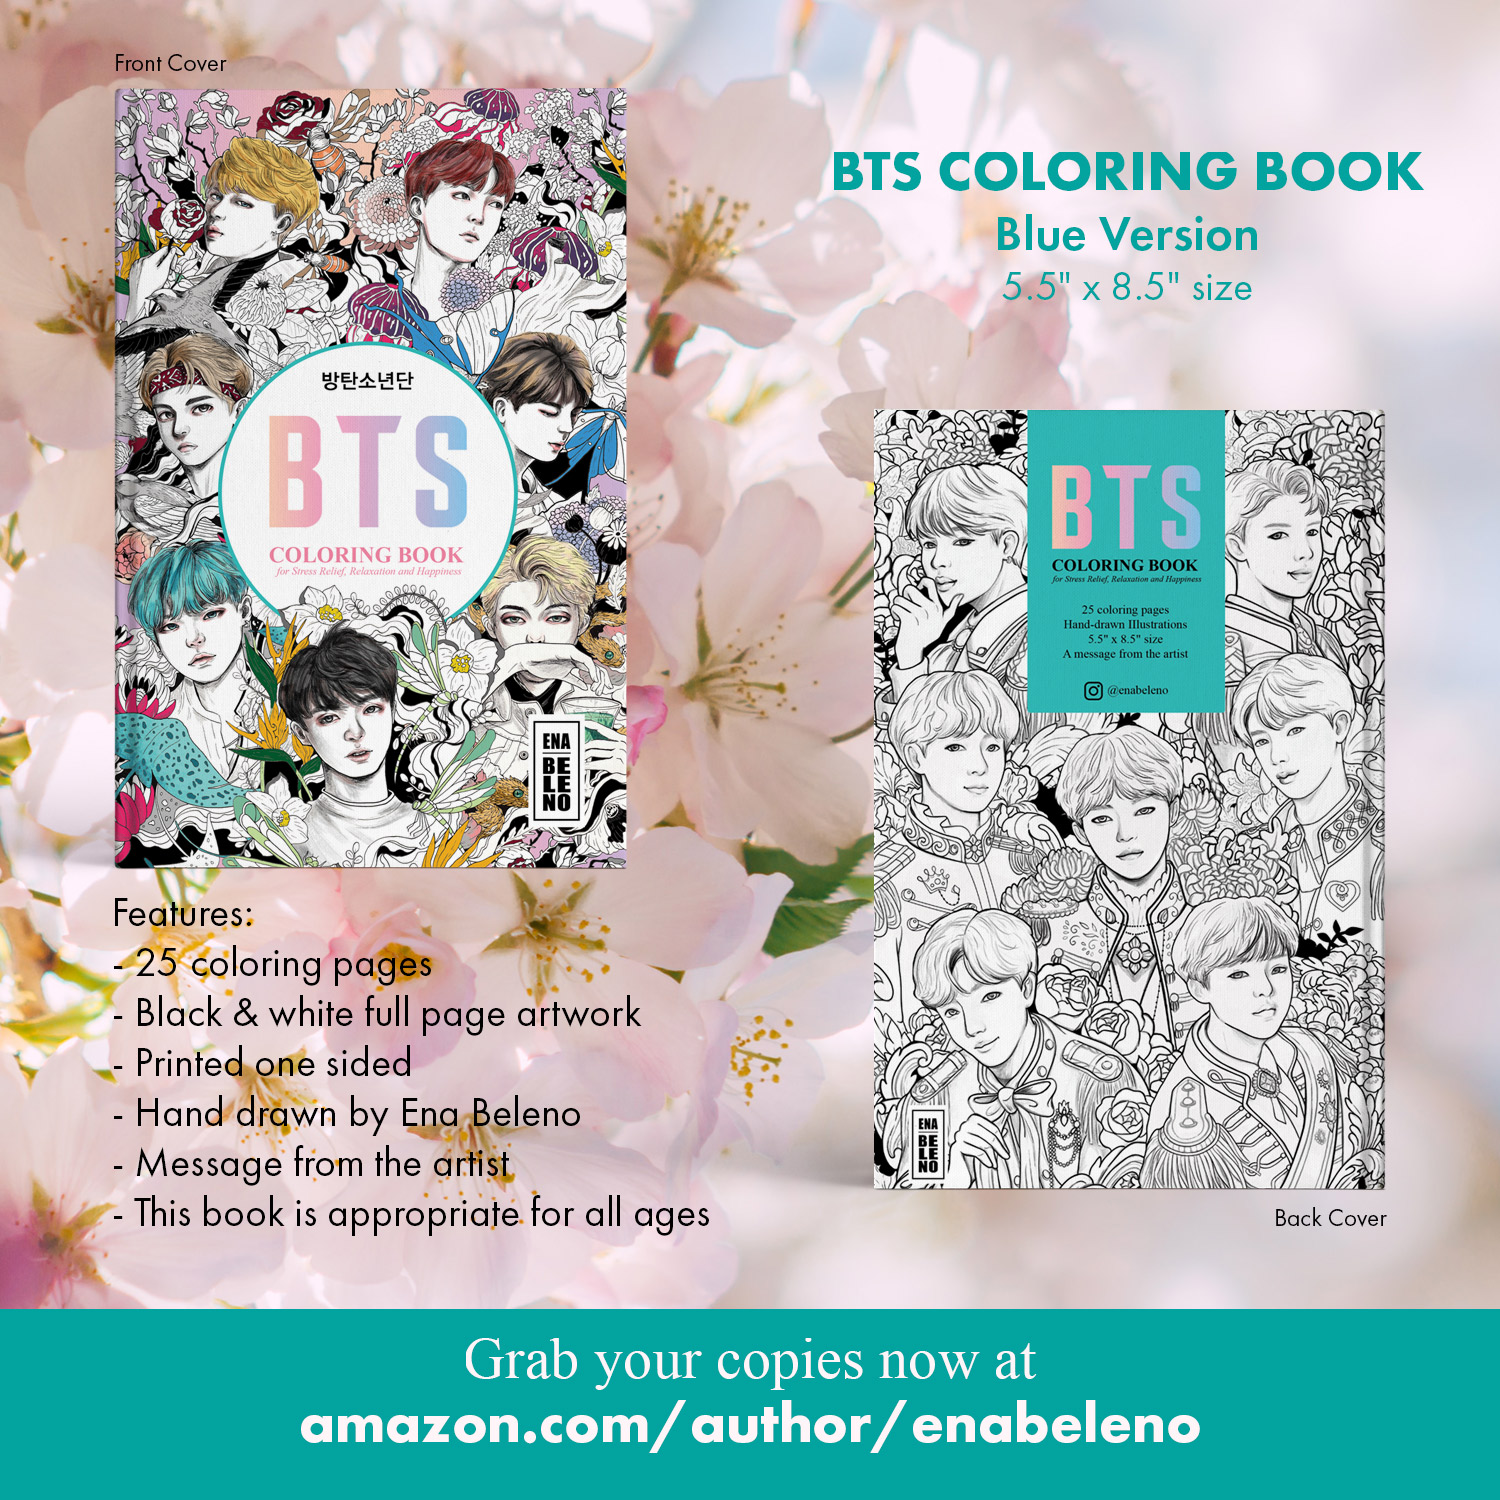 - BTS Coloring Book 5.5″ By 8.5″ Notebook Size For Stress Relief